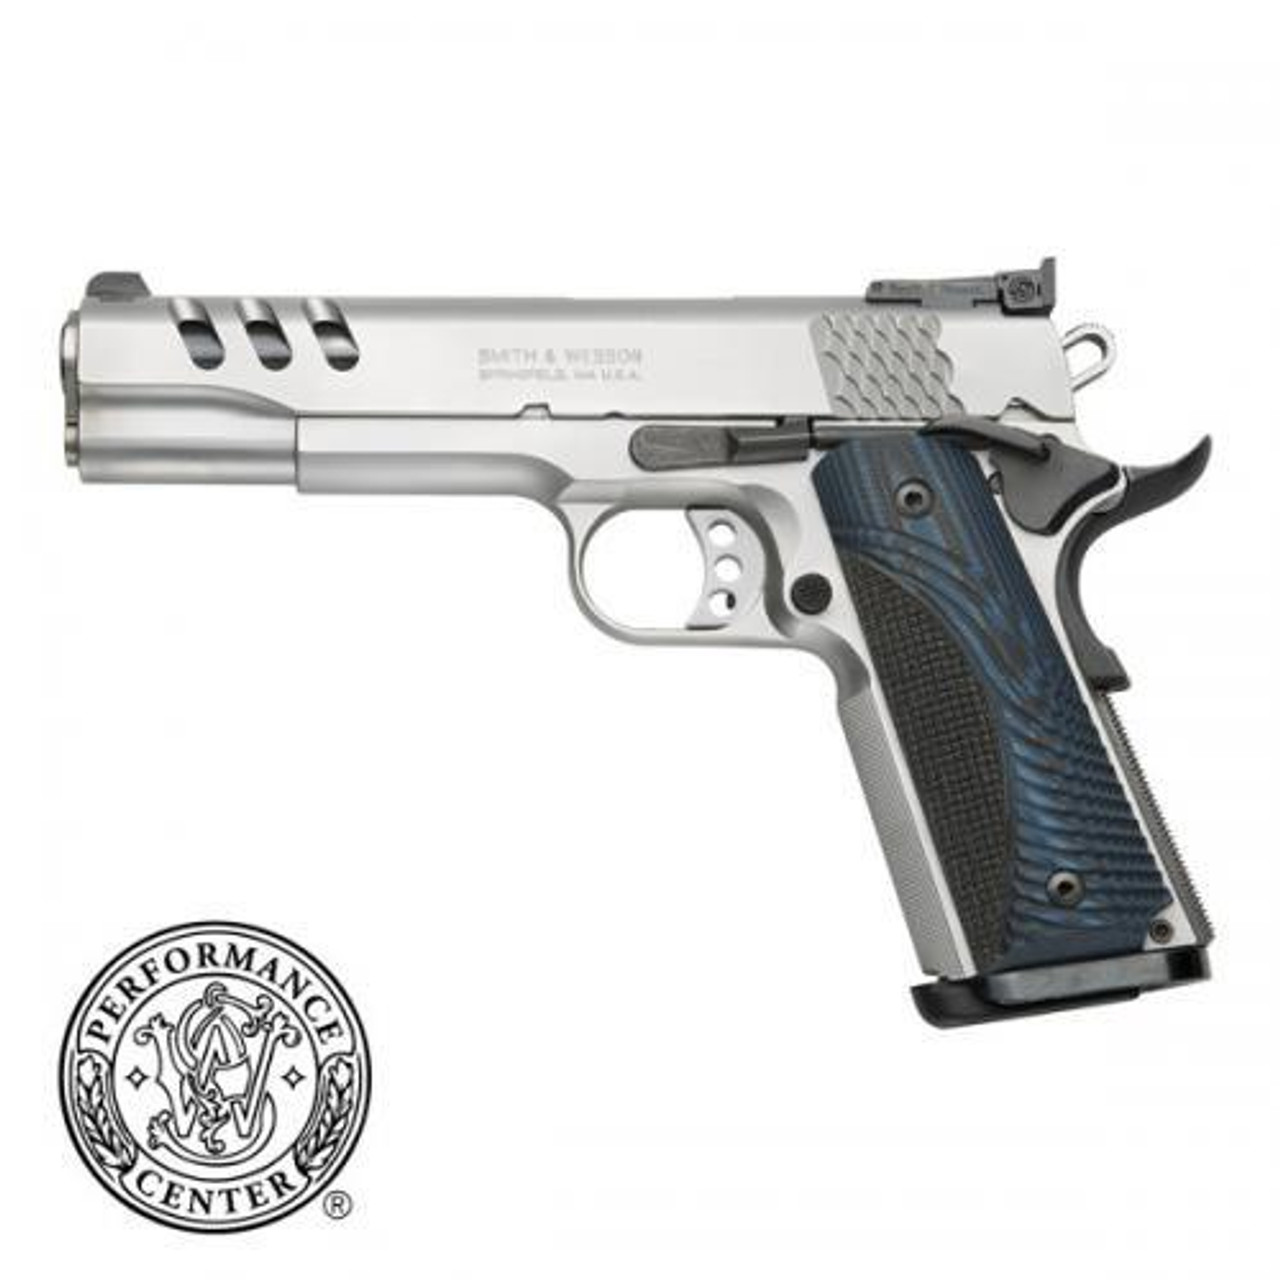 "Smith & Wesson 1911 Performance Center Semi-Auto Pistol, .45 ACP, 5"" Barrel, Wood Grips, Stainless Finish, 8 Rounds, Glass Bead Finish"